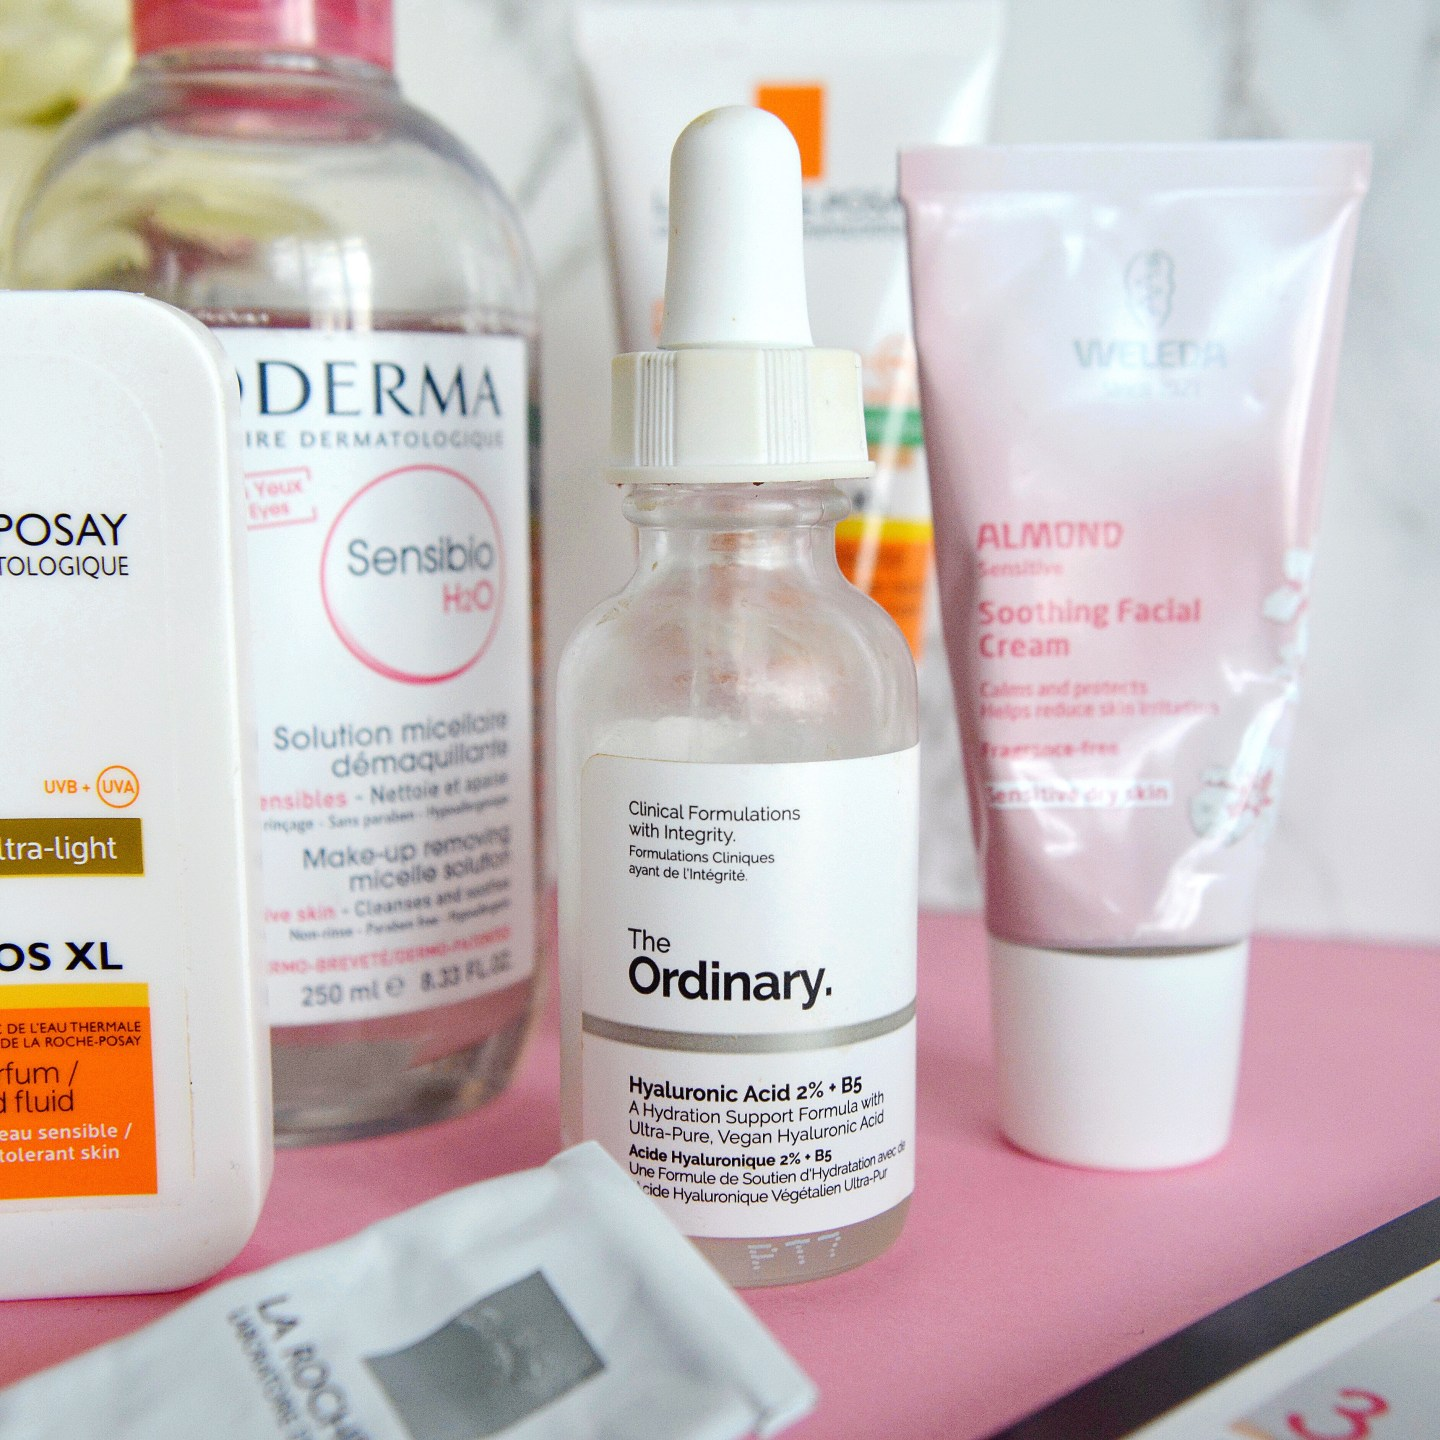 The Ordinary Hyaluronic Serum - a great basic serum suitable for sensitive skin